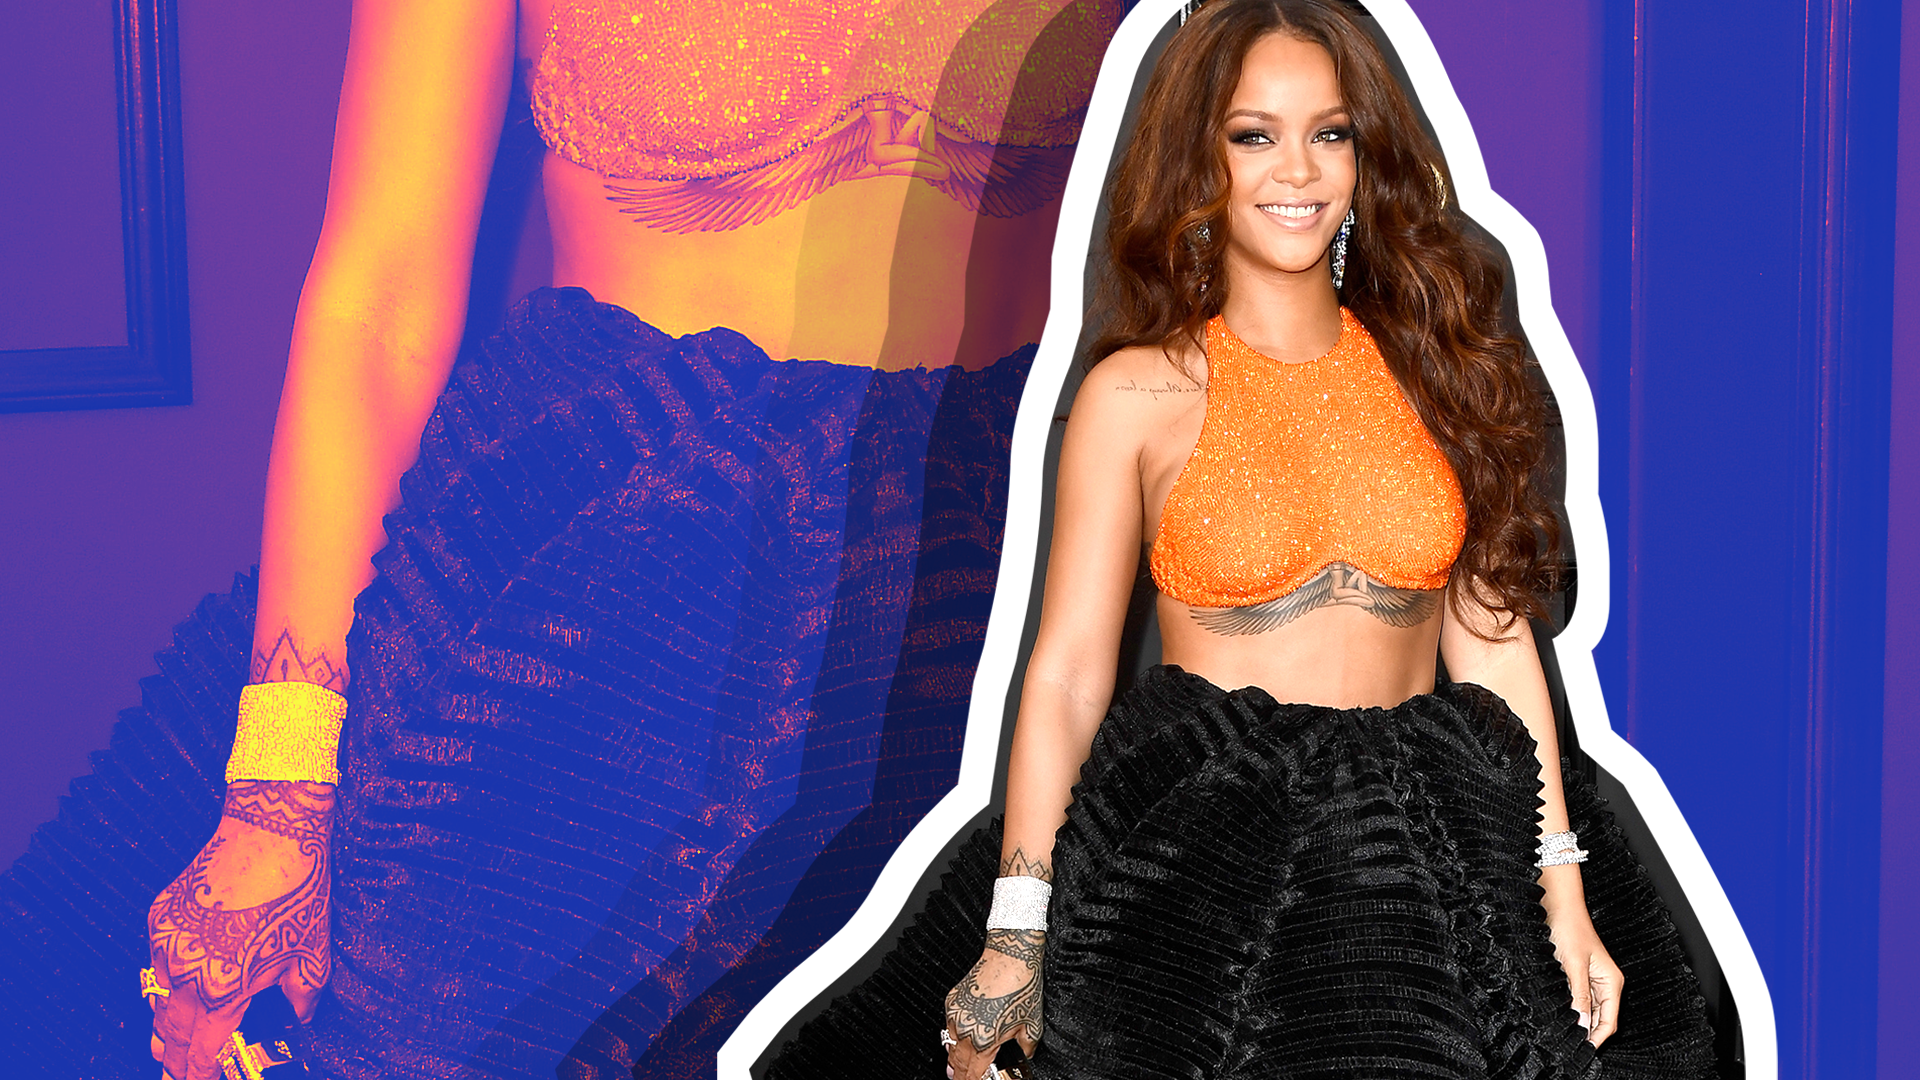 8 Celebrities Who You Didn't Know Have NSFW Tattoos